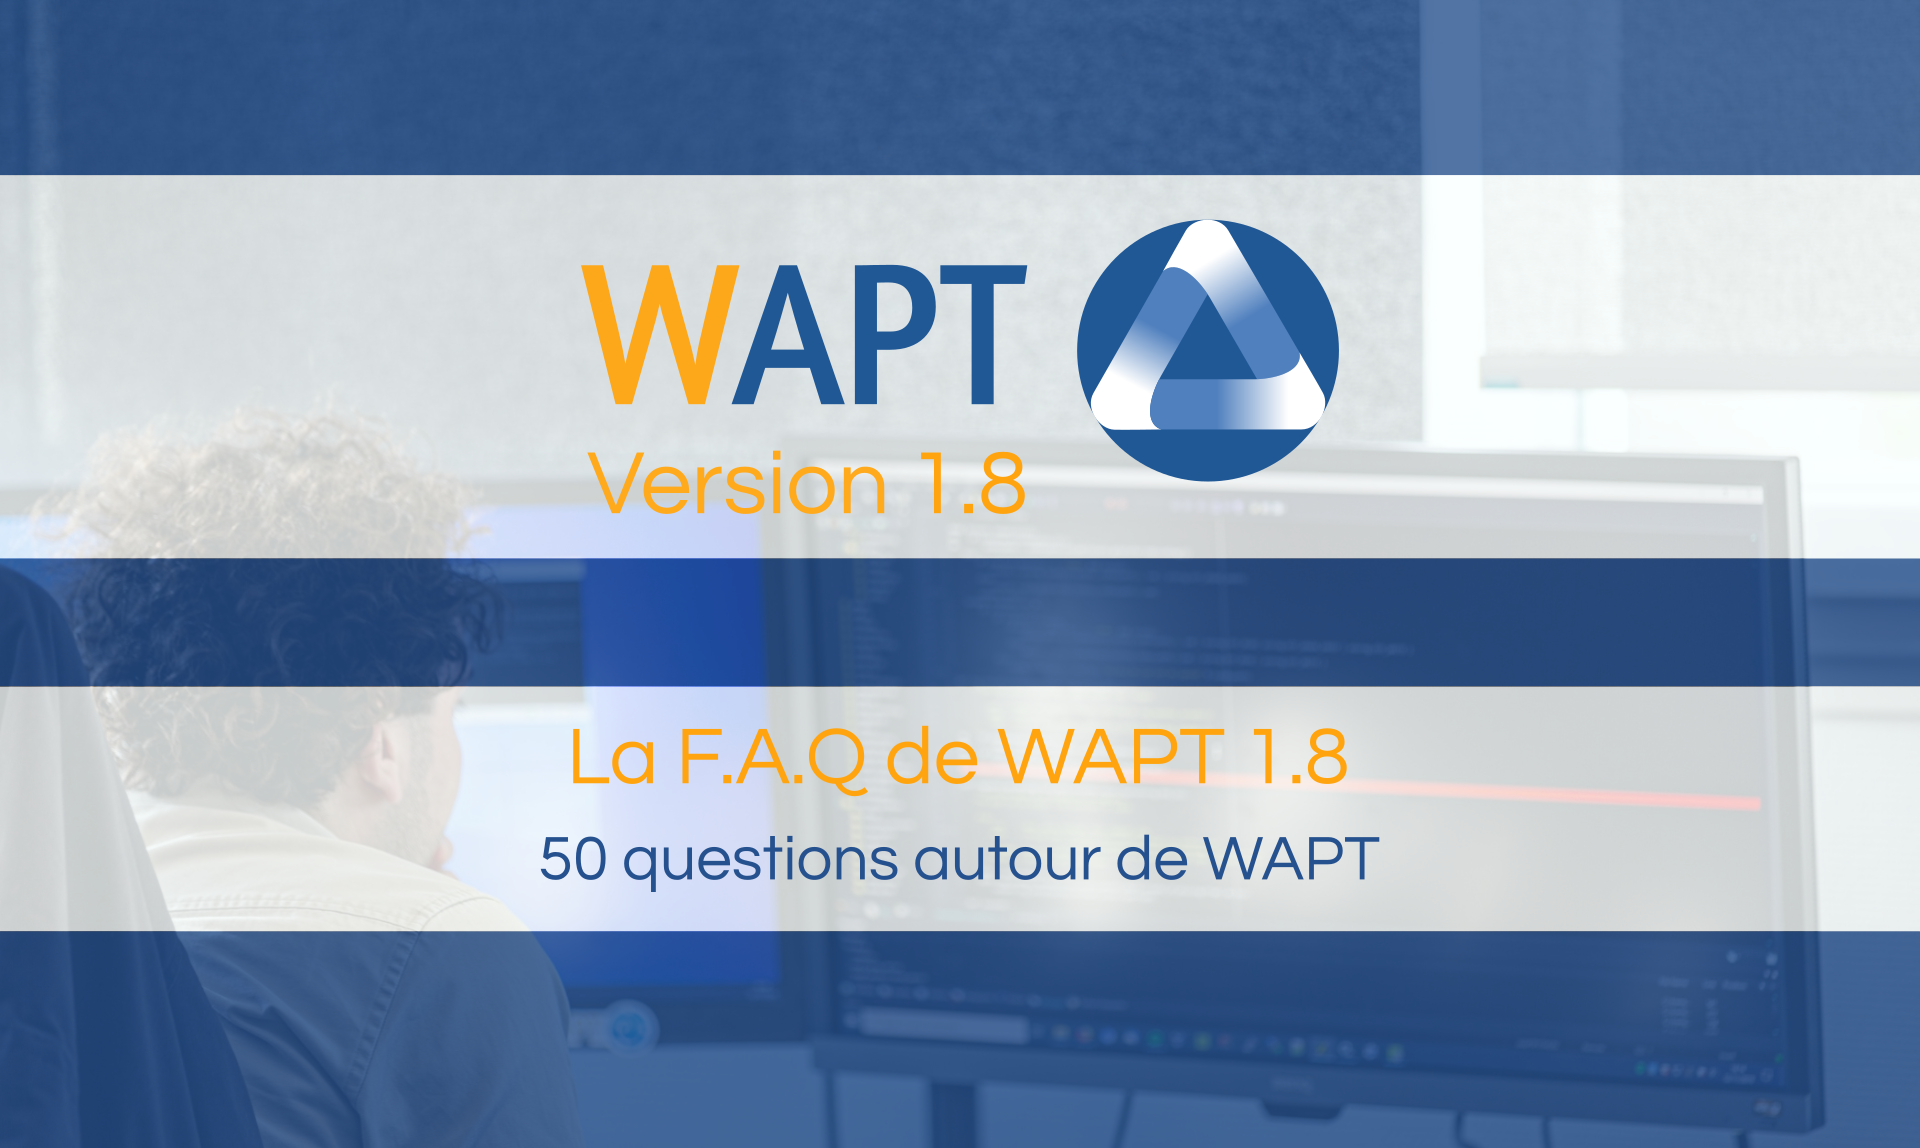 WAPT 1.8 F.A.Q : 50 Questions about WAPT